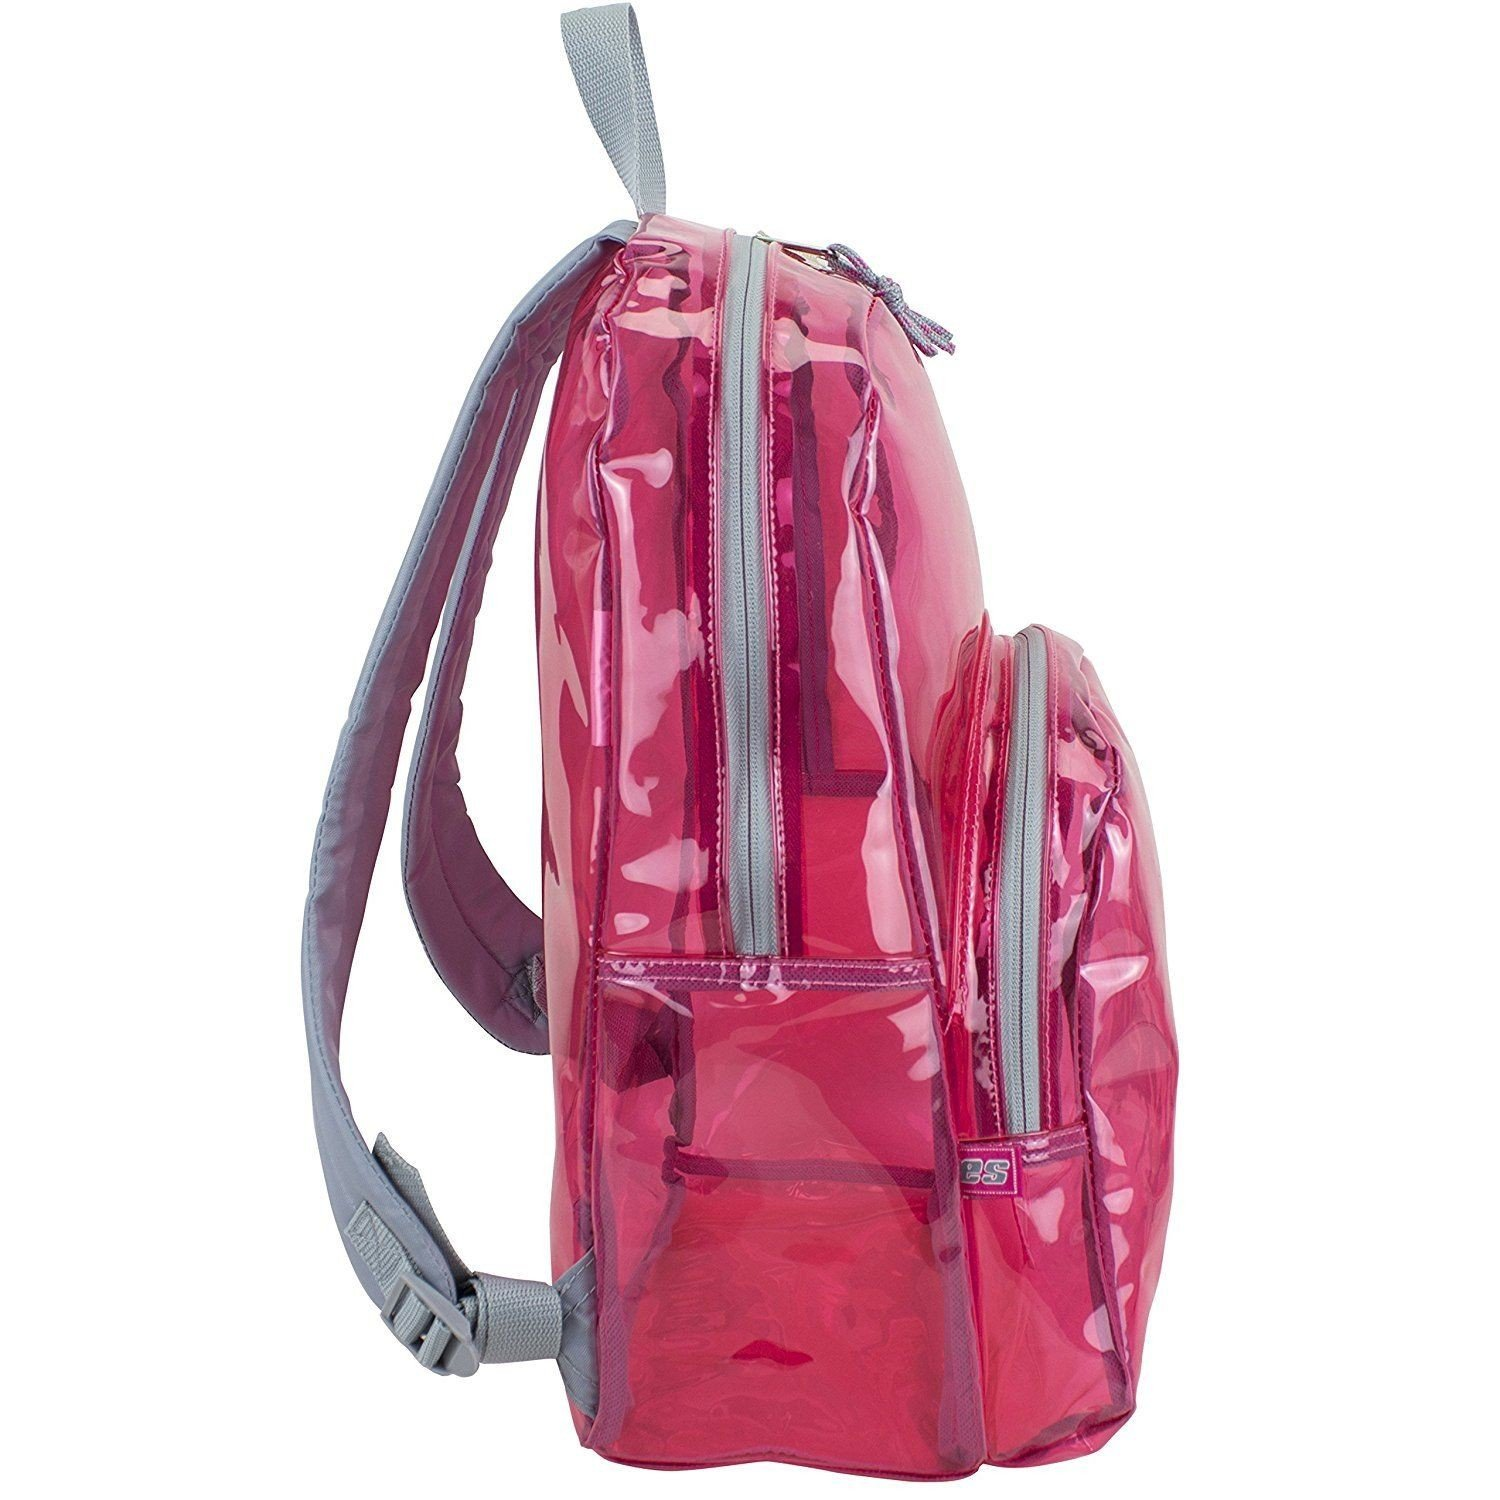 17'' Clear Pink Wholesale Backpack - Case of 24 by Eastsport (Image #3)